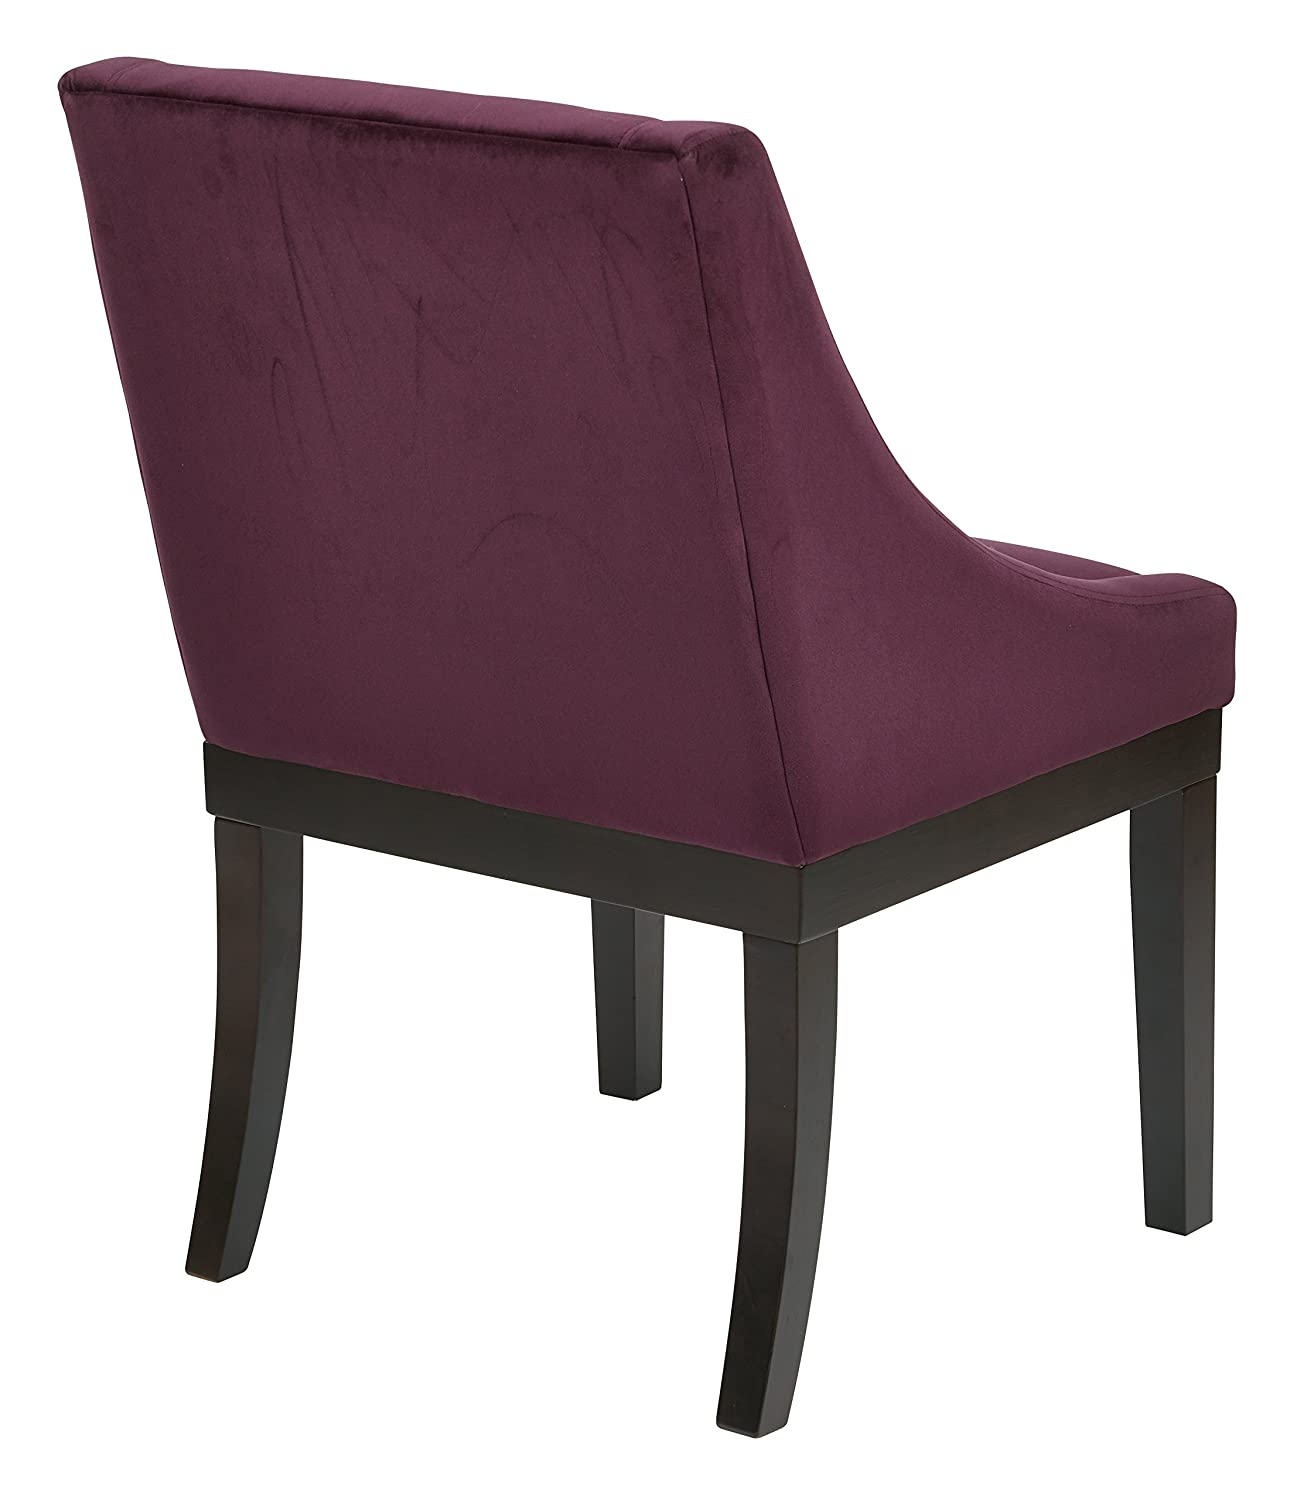 Amazon AVE SIX Monarch Uphosltered Wingback Chair with Solid